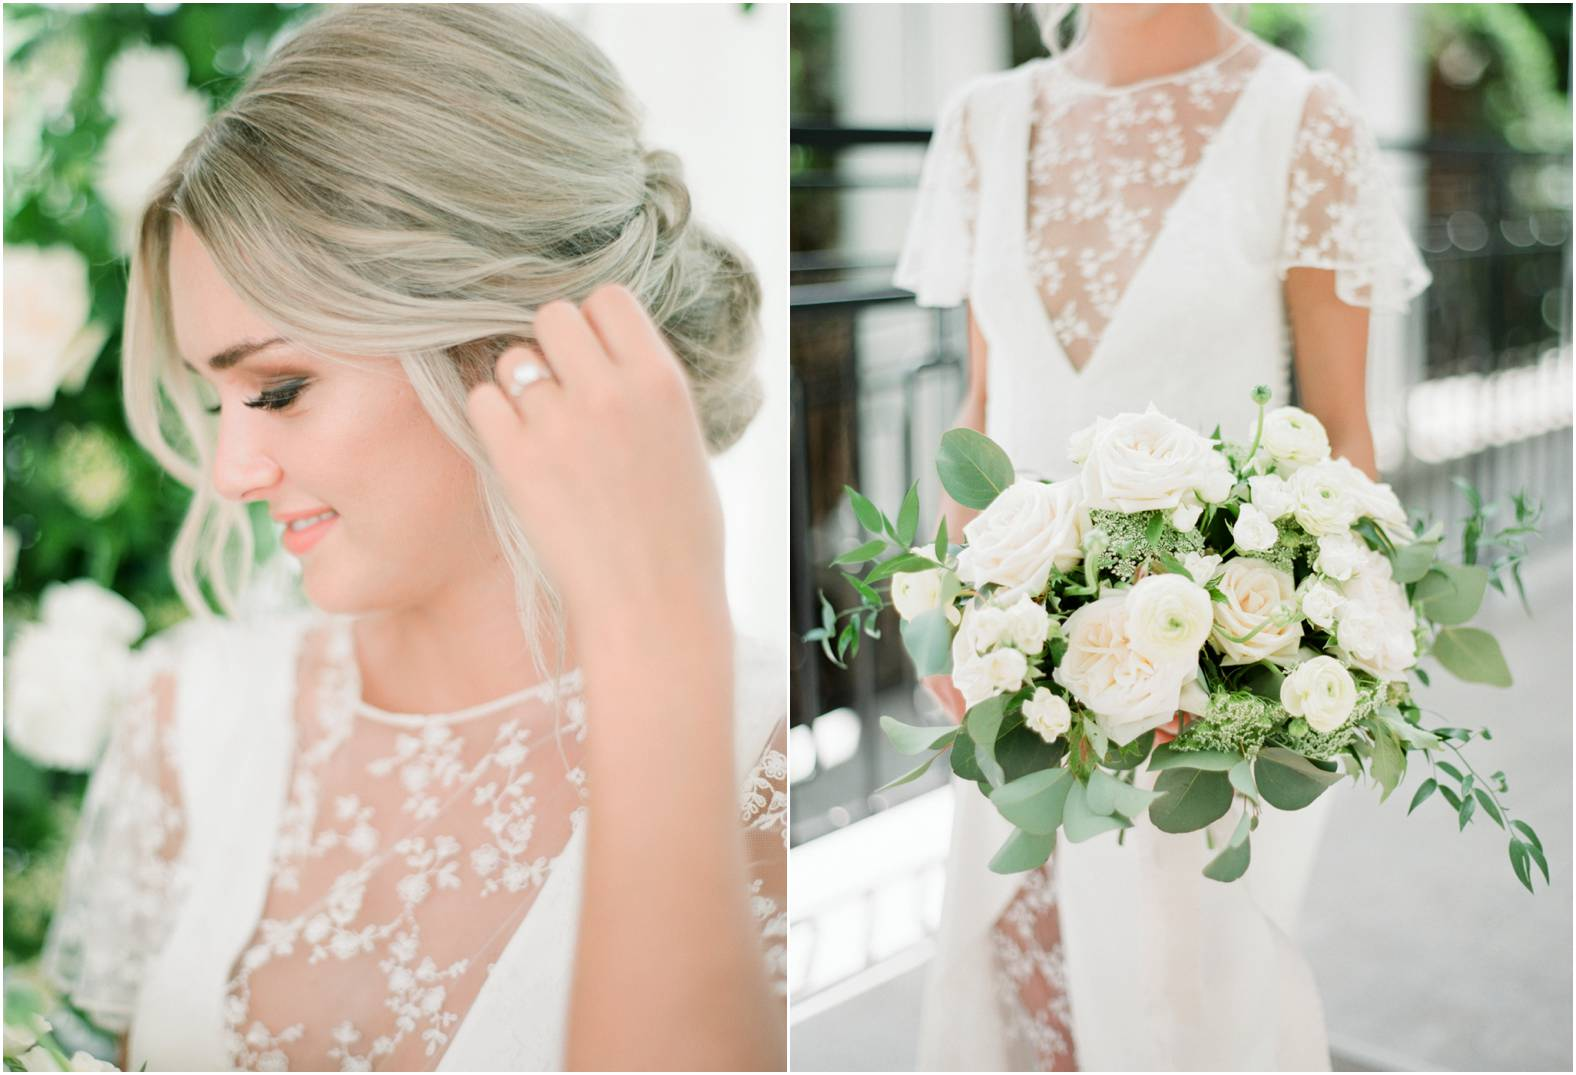 Bride with classic low bun updo holds a large luxury bouquet of neutral blooms and greenery for her garden wedding at The Gate House in Niagara on the Lake